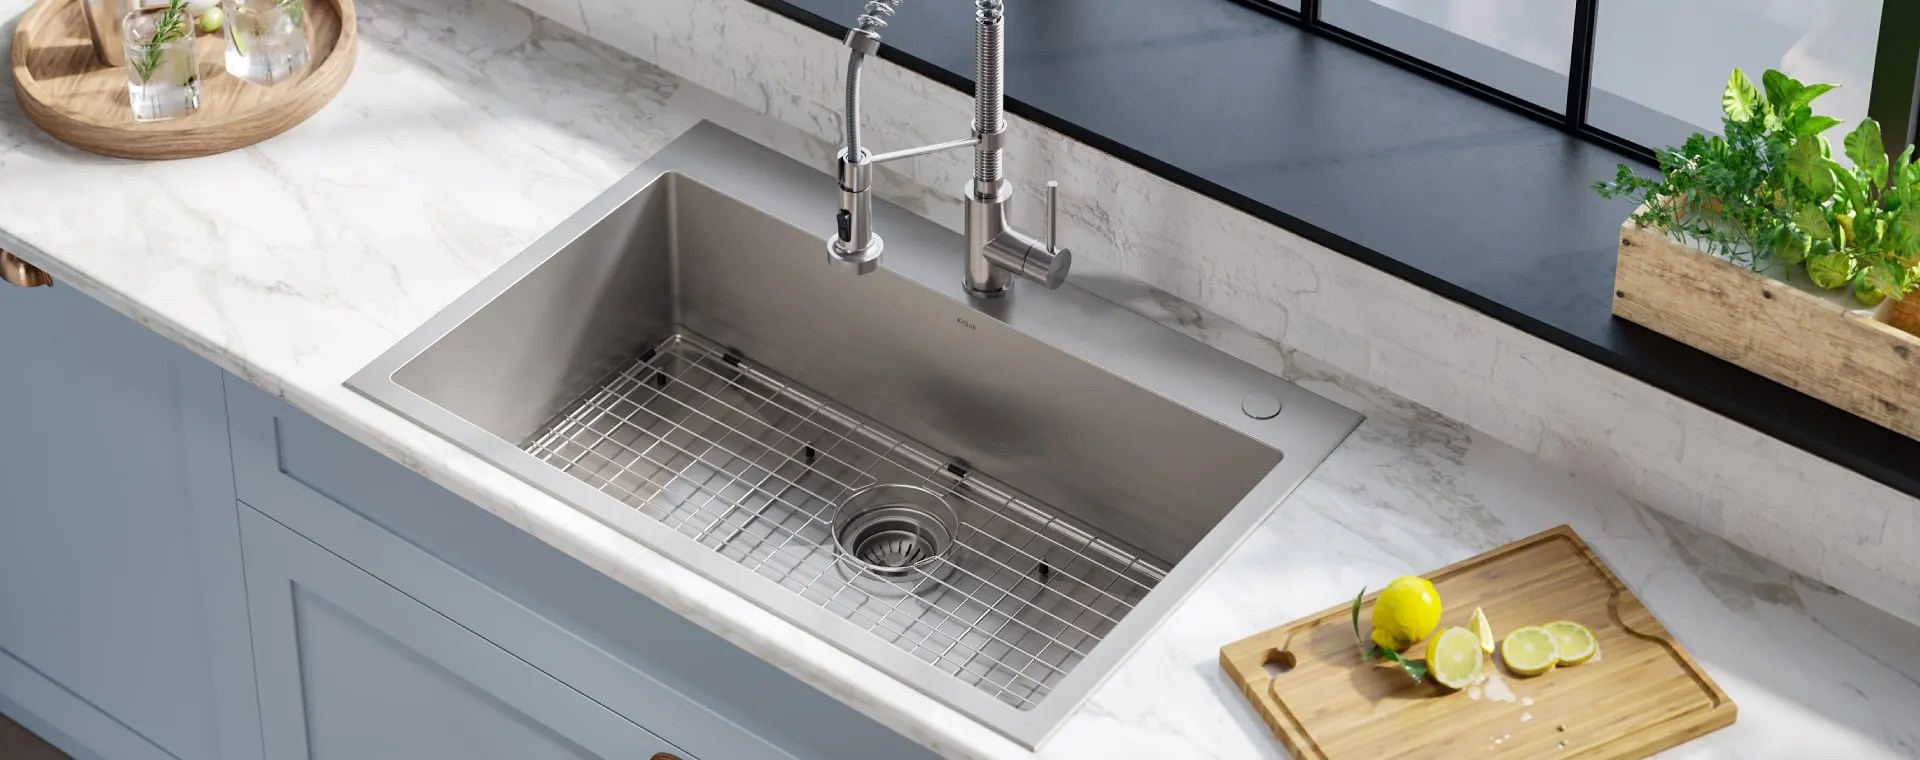 Kraus Kitchen Sinks Selection Of Style Function Materials